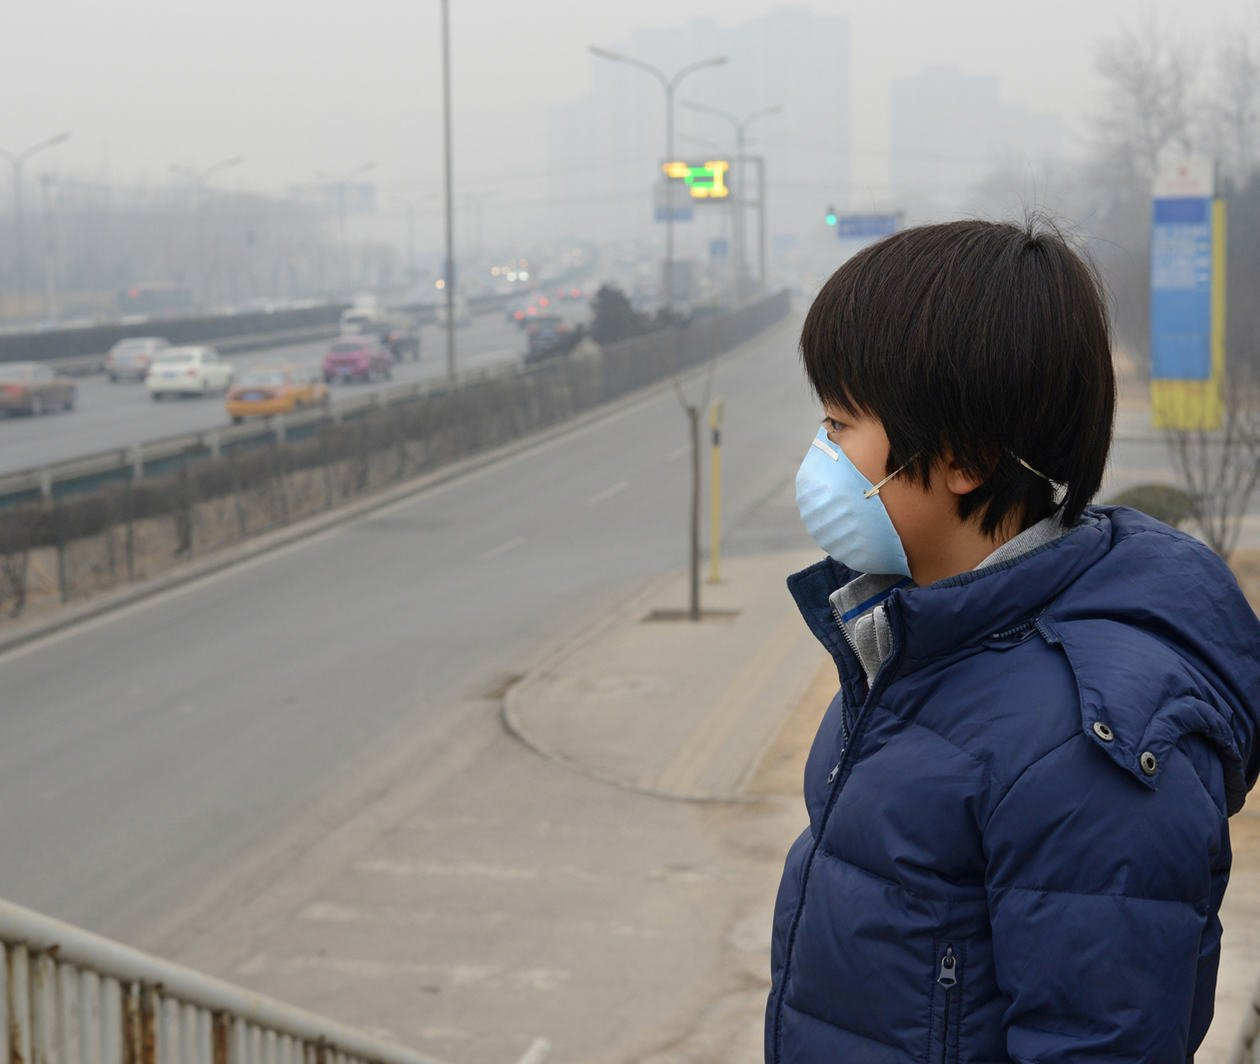 The Impact of Climate Change on Public Health